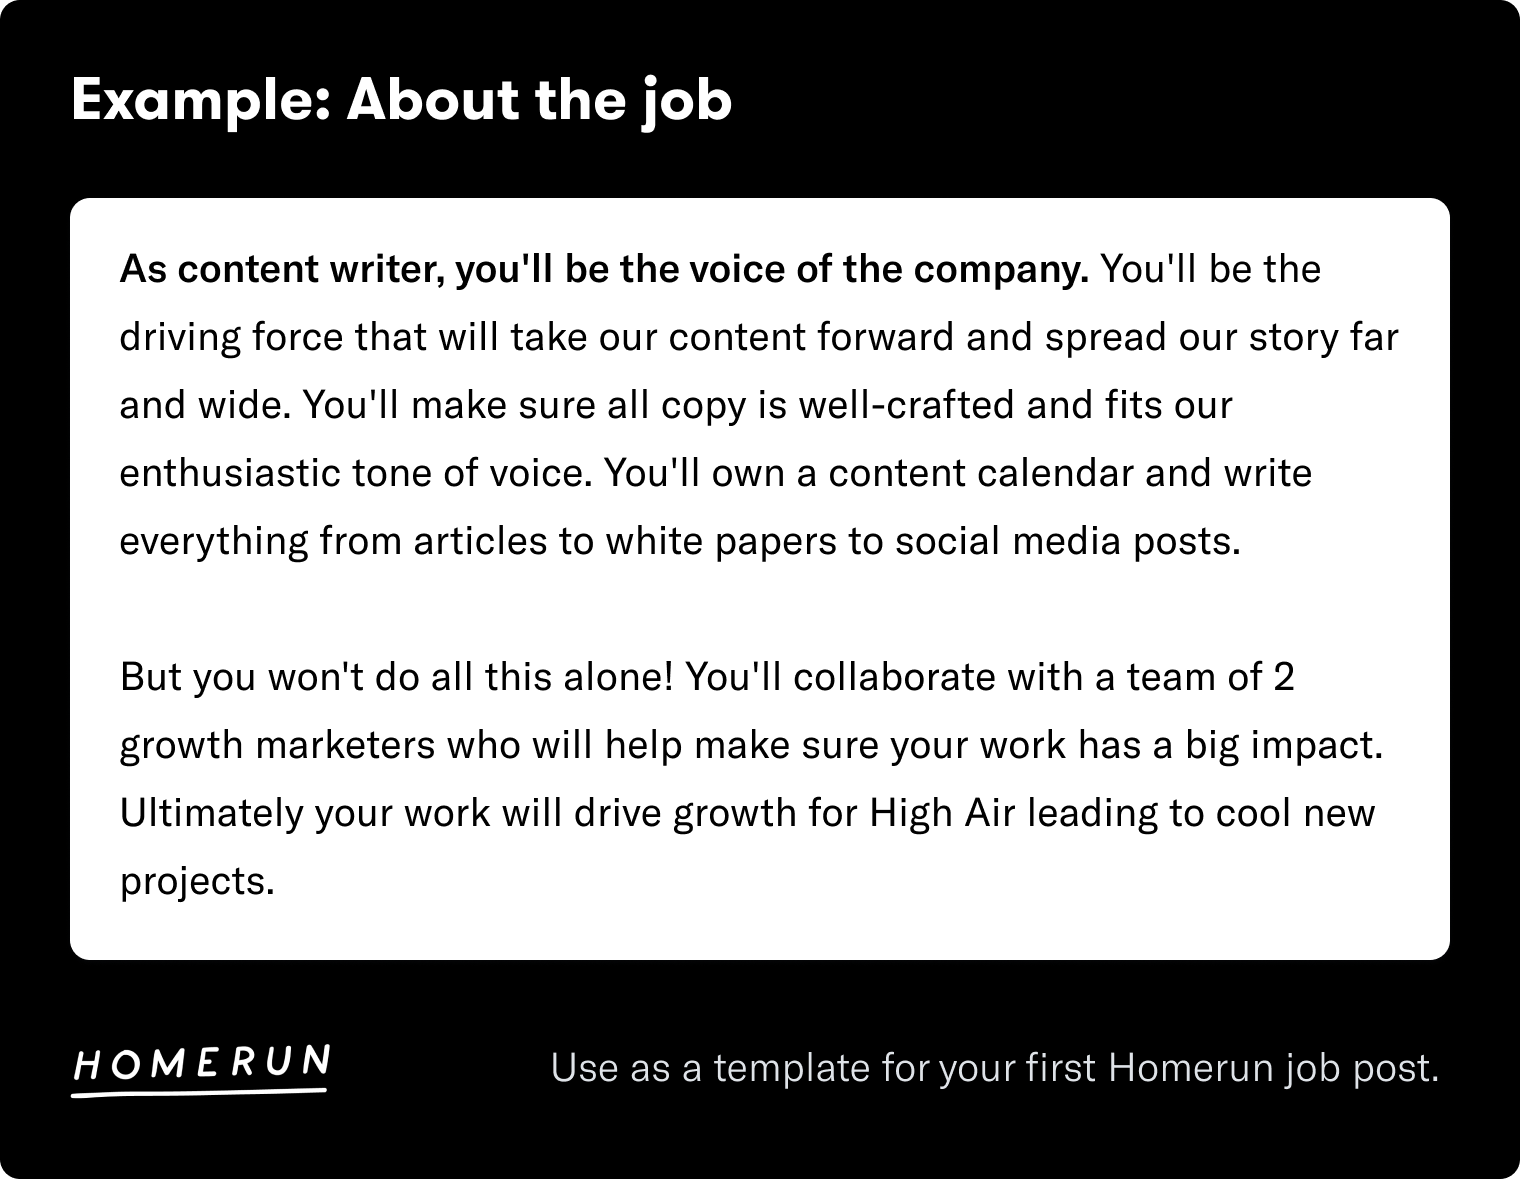 Example about the job, job description template